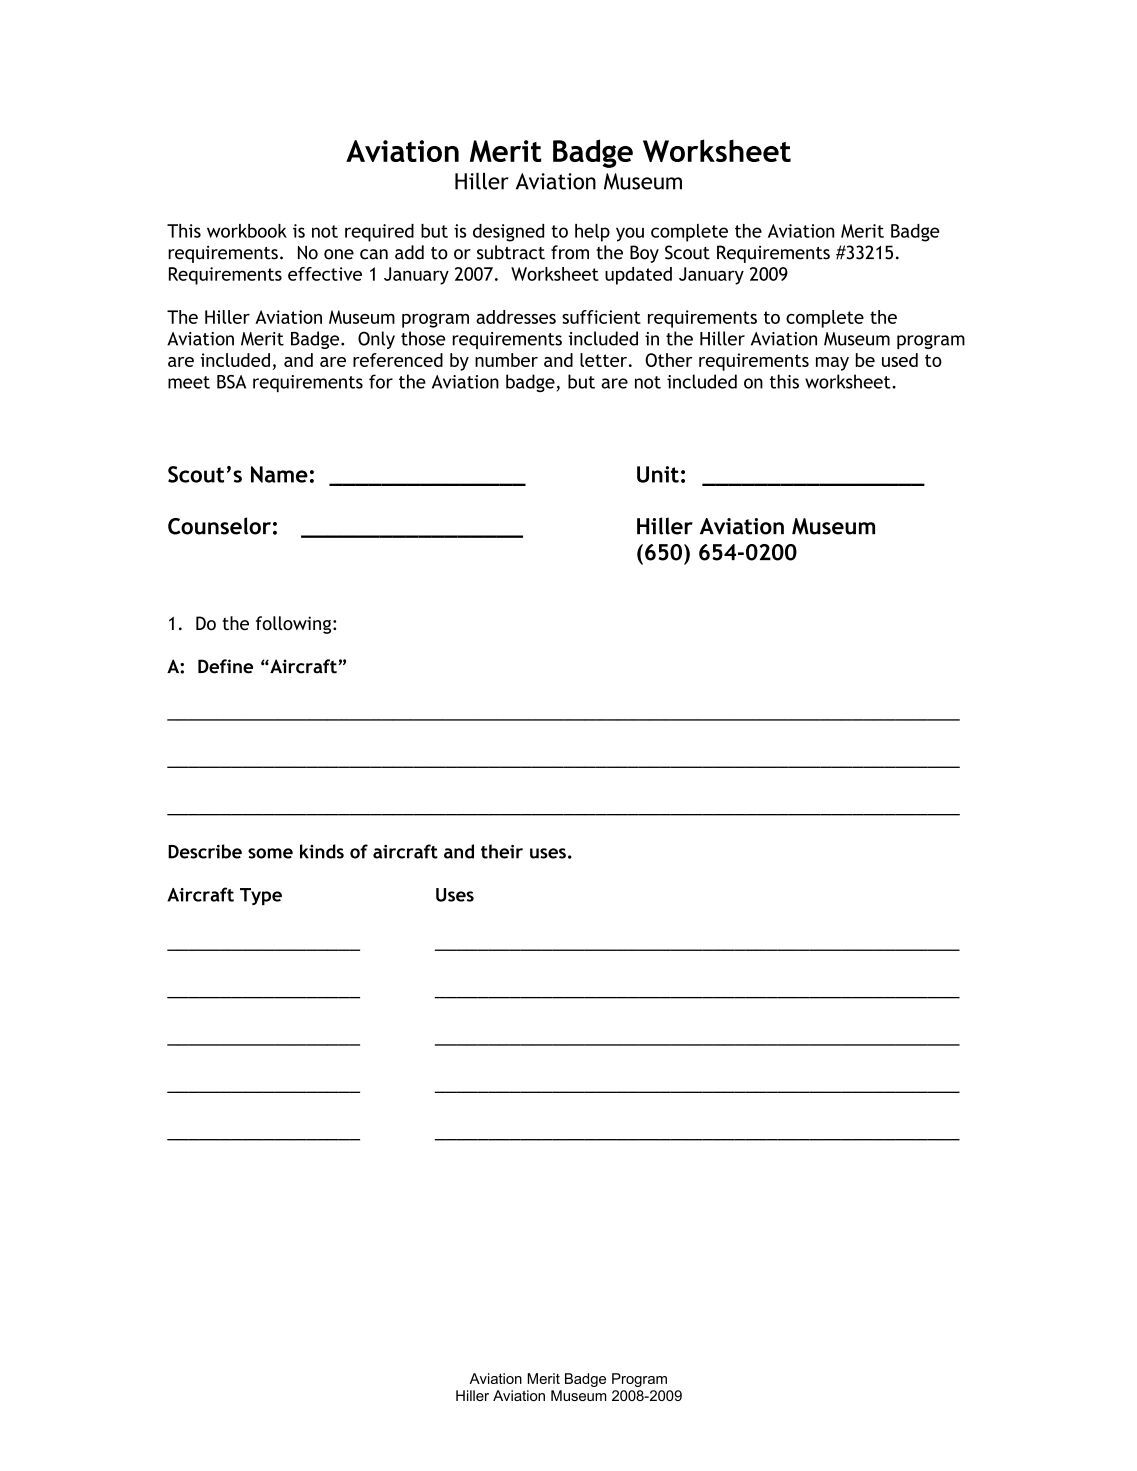 Worksheets. Family Life Merit Badge Worksheet. atidentity.com Free ...